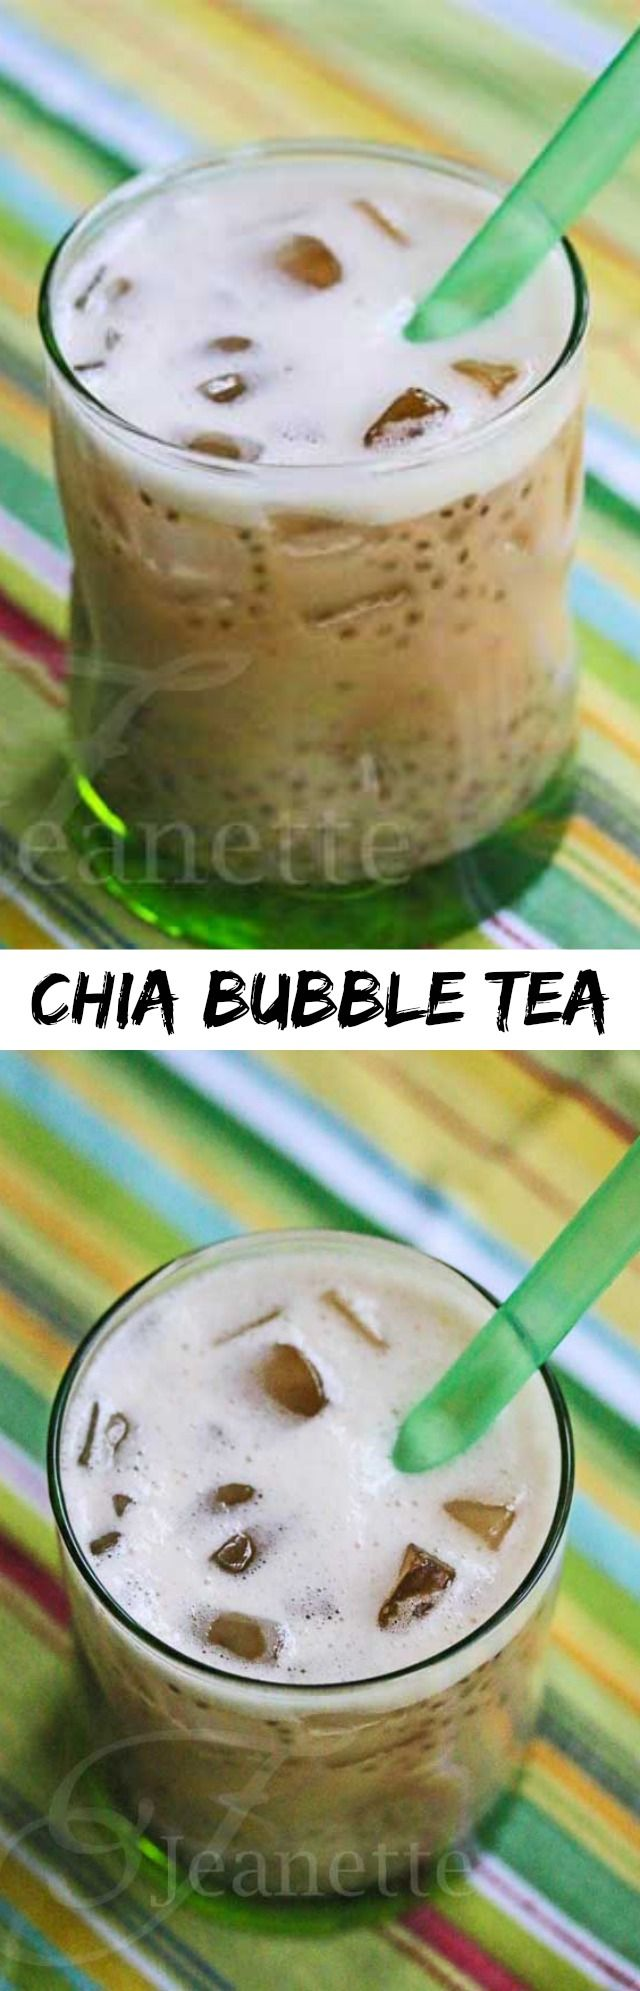 Love bubble tea? Check out this DIY recipe from Jeanette's Healthy Living using chia seeds, raw honey, and our Chocolate Rooibos tea!